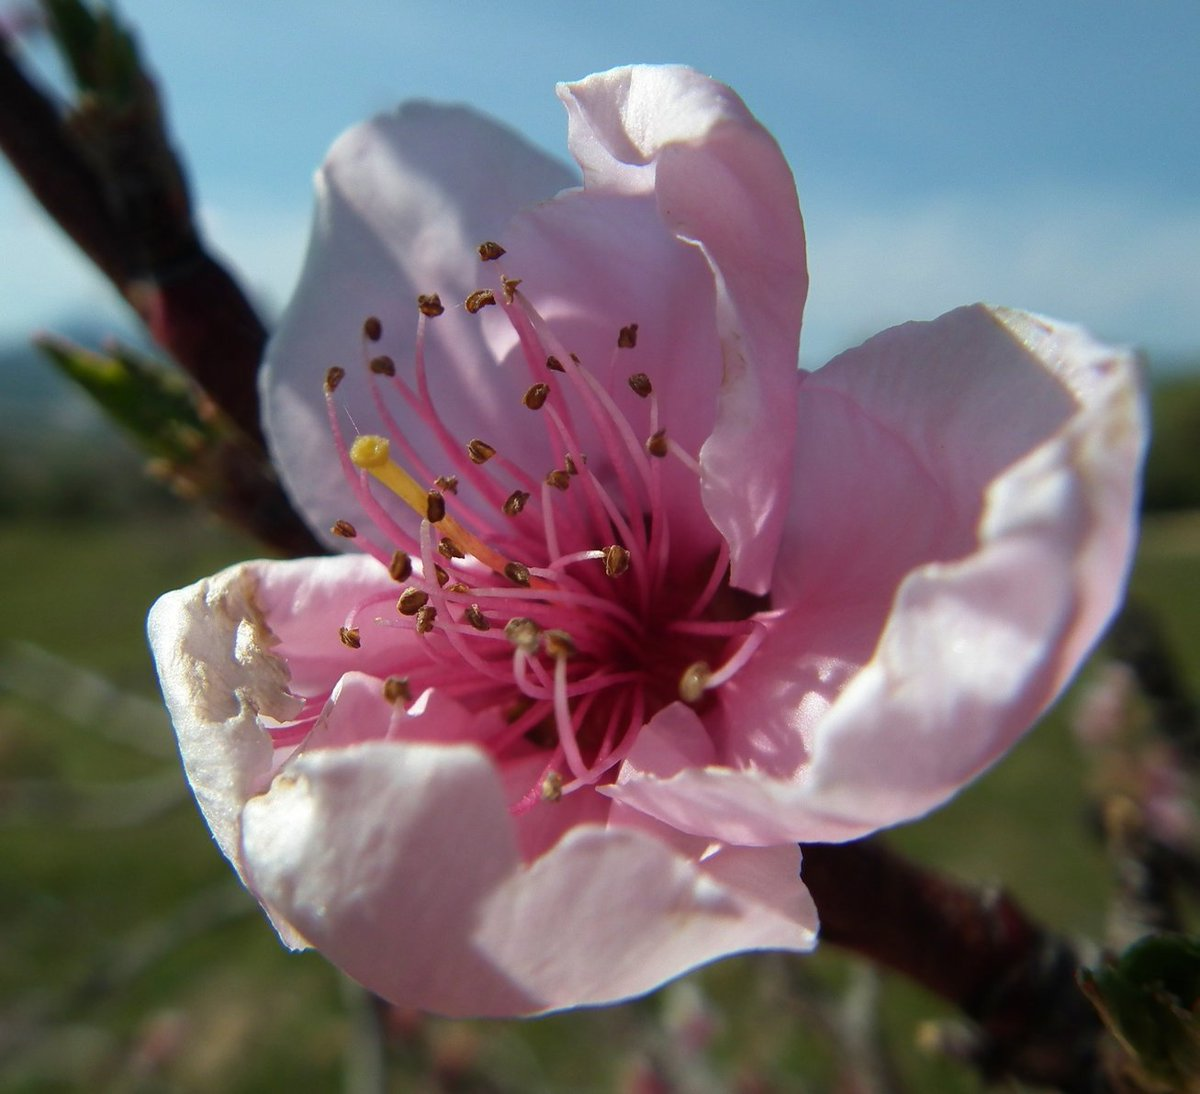 Cherry Blossom - Flowers  http:// eyesshare.co.uk/ProjectRetail/ Default/Translator.php?page=Main.html&amp;subpage=/WebRetail/Pages/Shop/CreatorProducts.html&amp;creator=3&amp;product=165&amp;app=eyes &nbsp; …  #zoom #shutter <br>http://pic.twitter.com/77CoSpsRrF